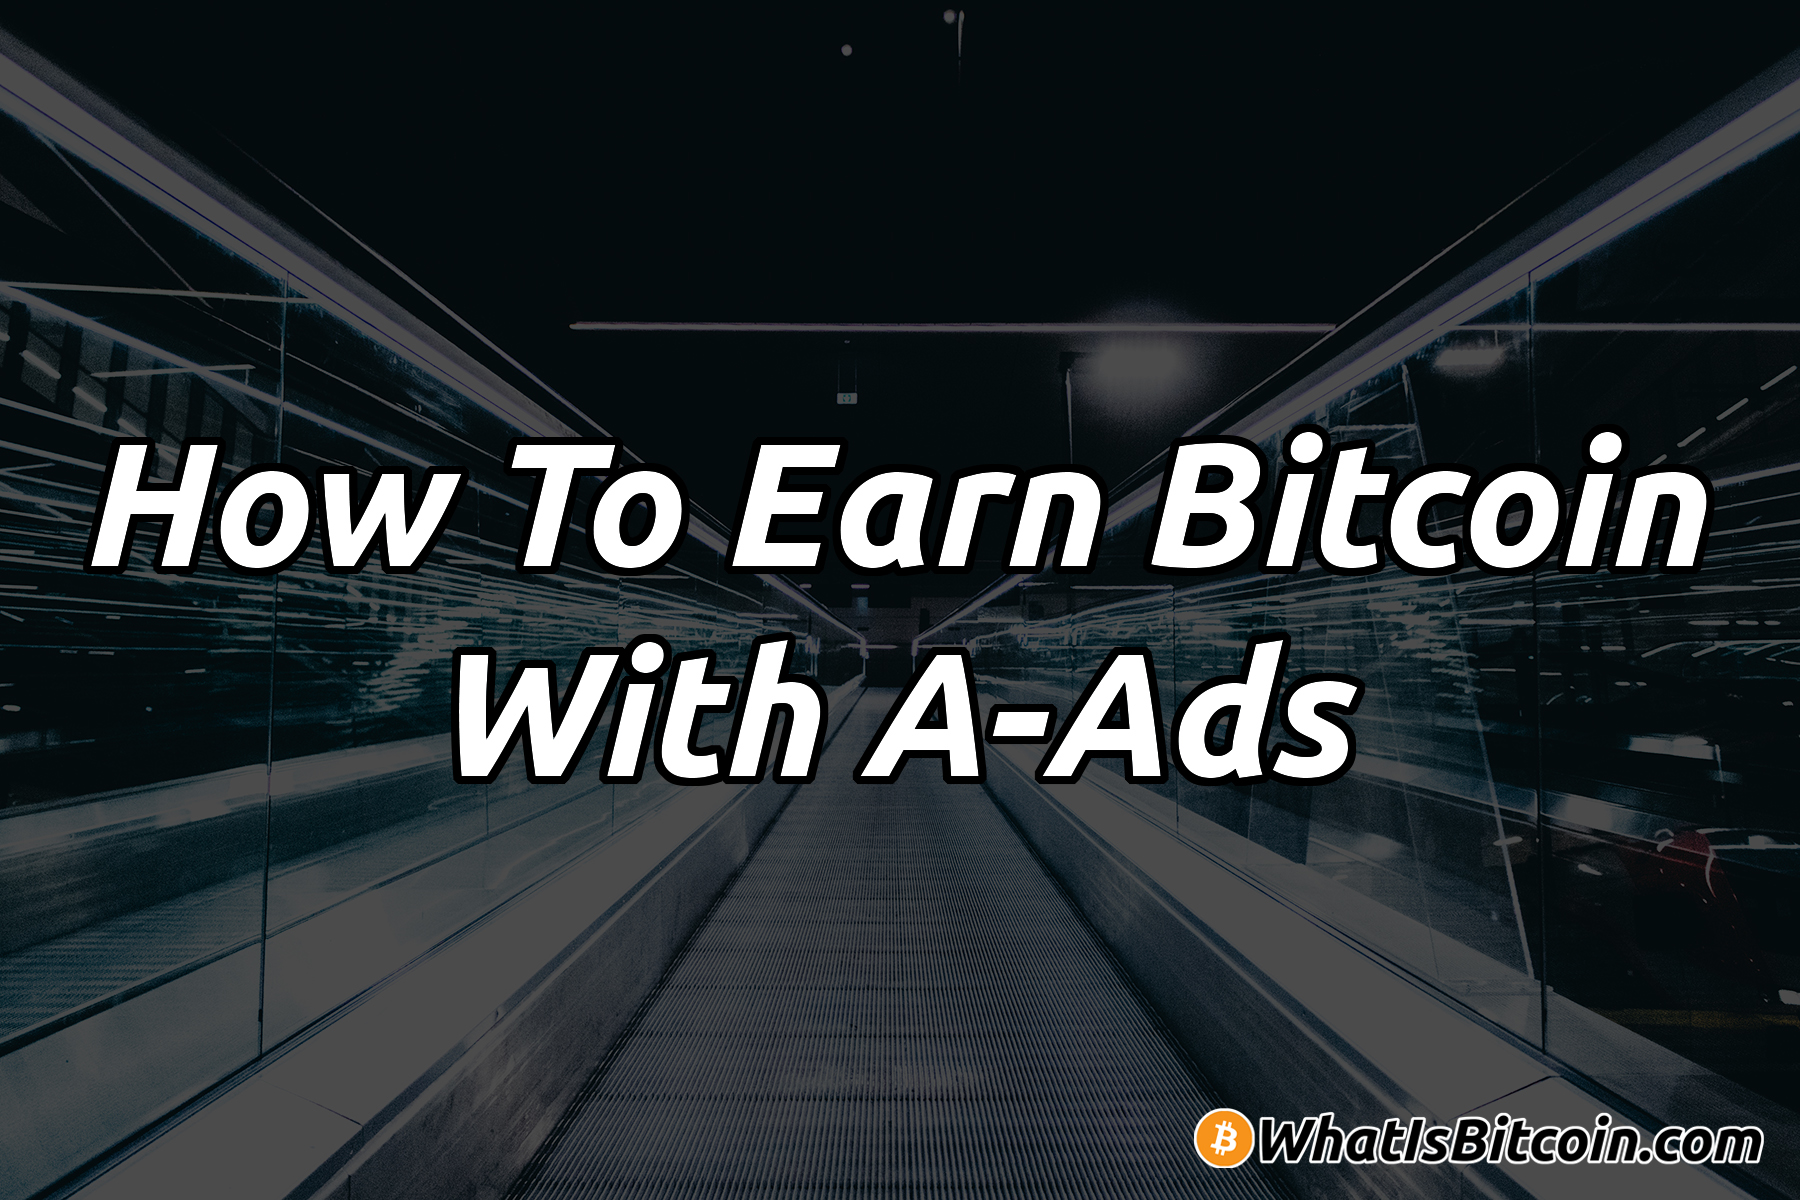 How To Earn Bitcoin With A-Ads